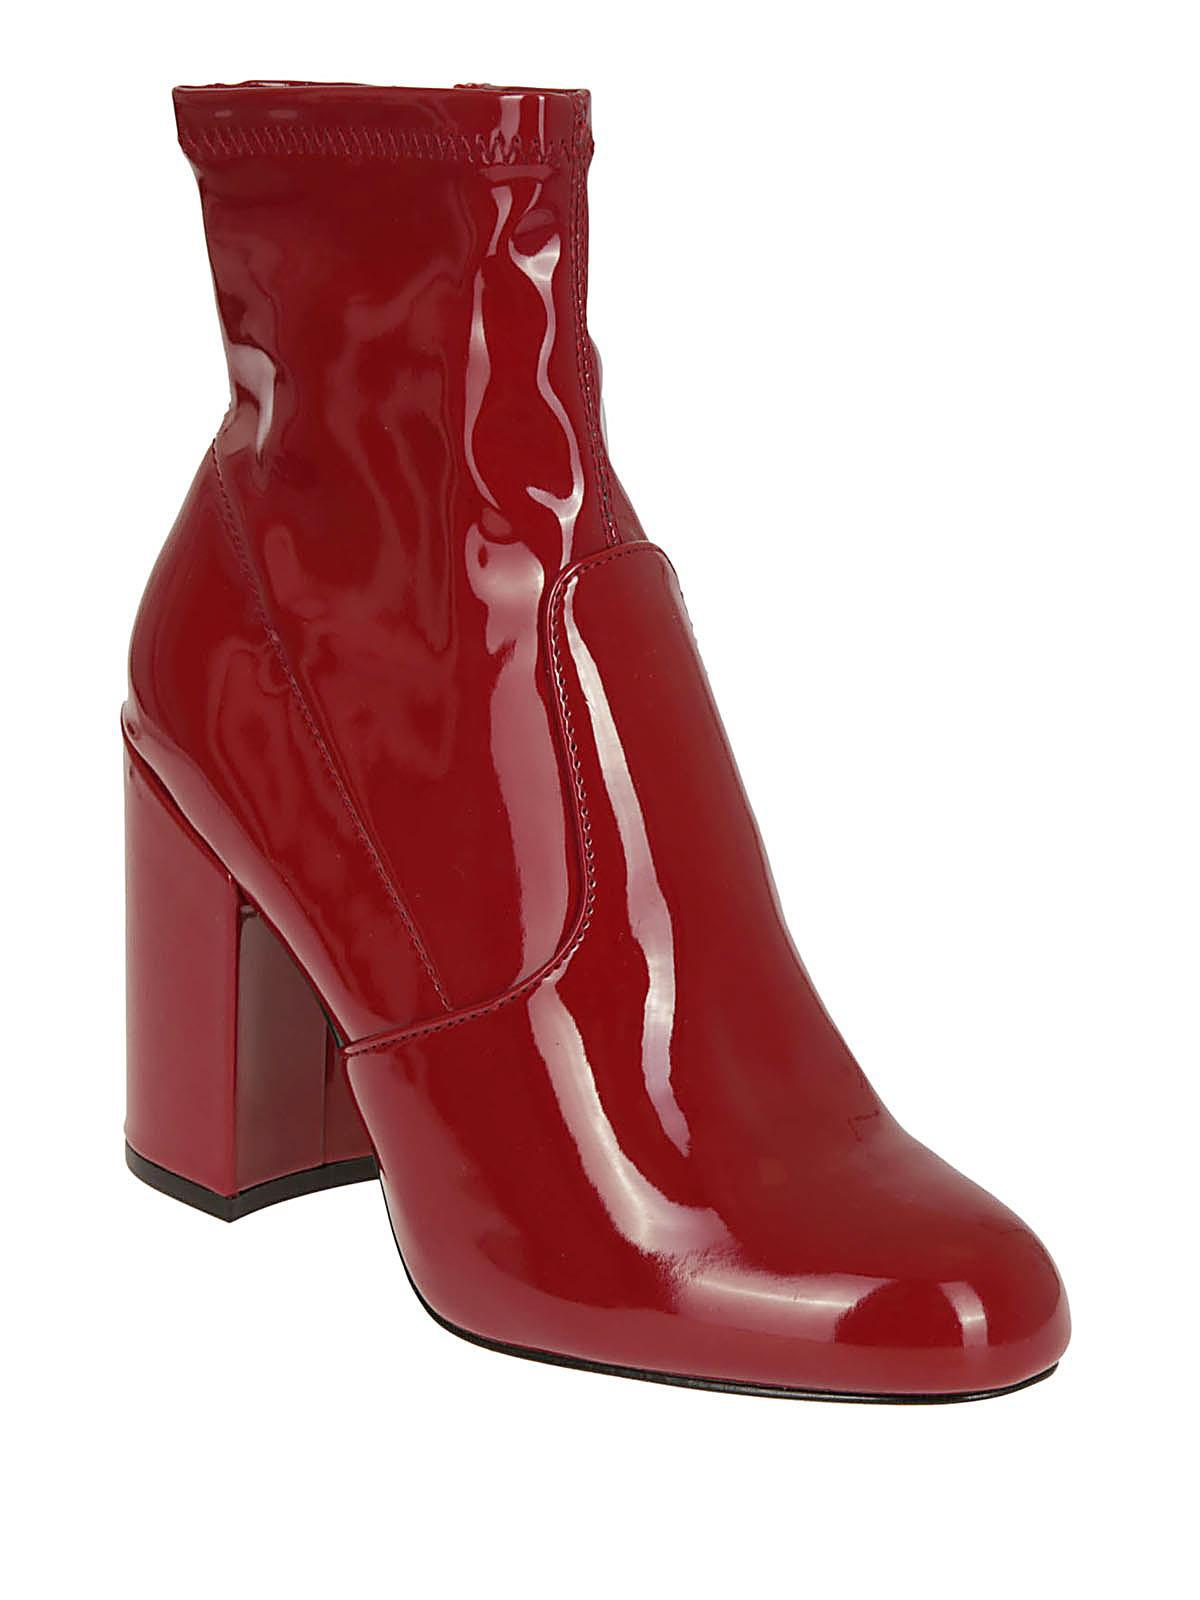 48bcacbd3dd Lyst - Steve Madden Gaze Women s Low Ankle Boots In Red in Red - Save 41%